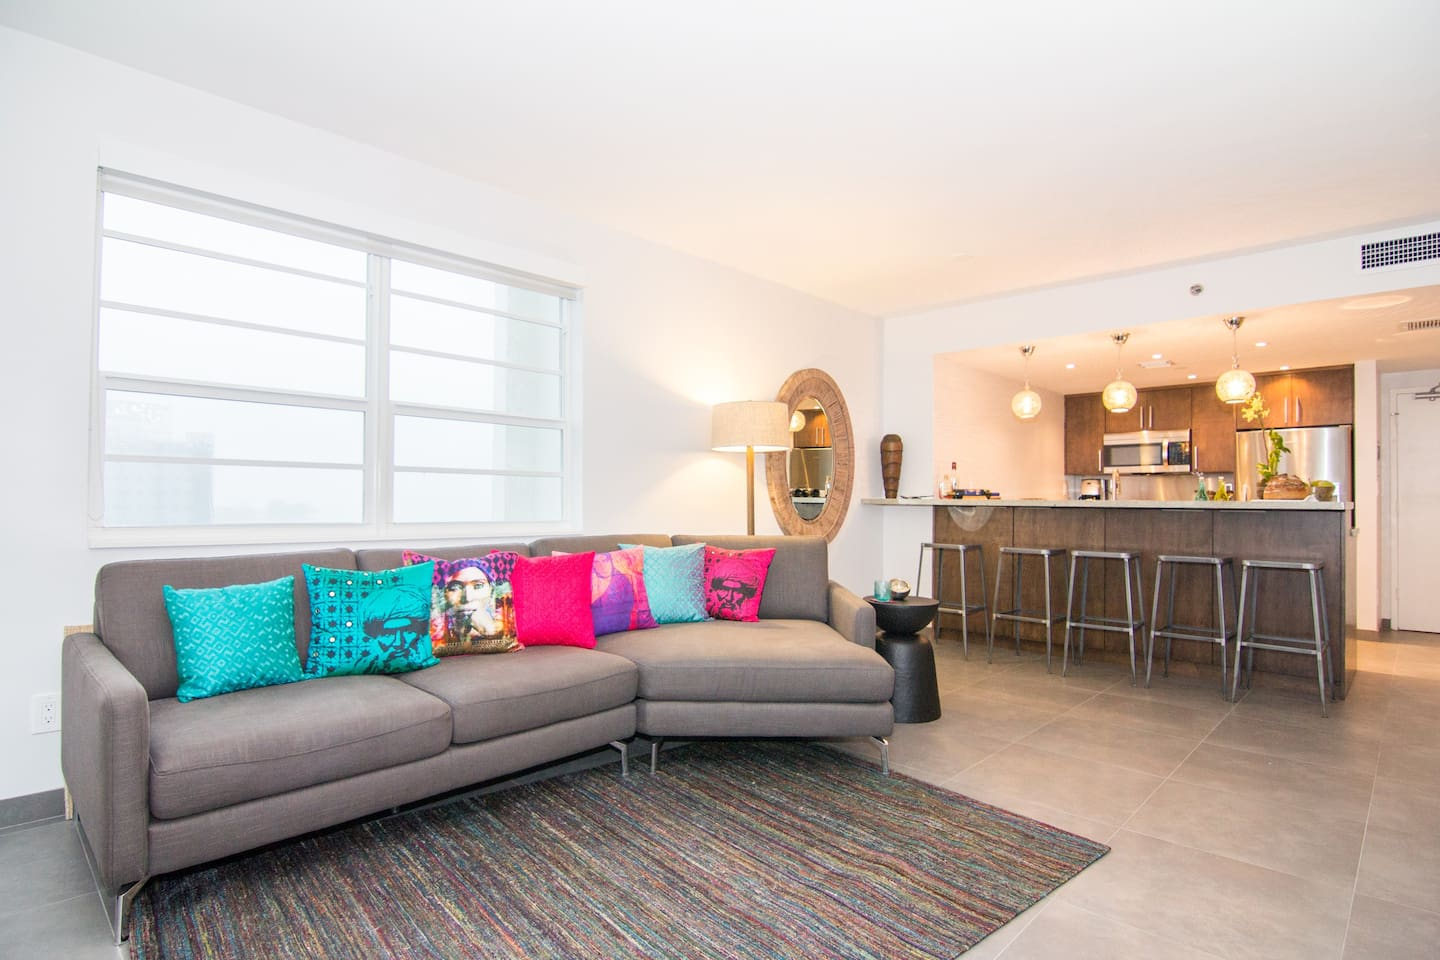 A tastefully renovated 2 Bedroom, 2 Bath at The decoplage on South Beach, Miami Beach!